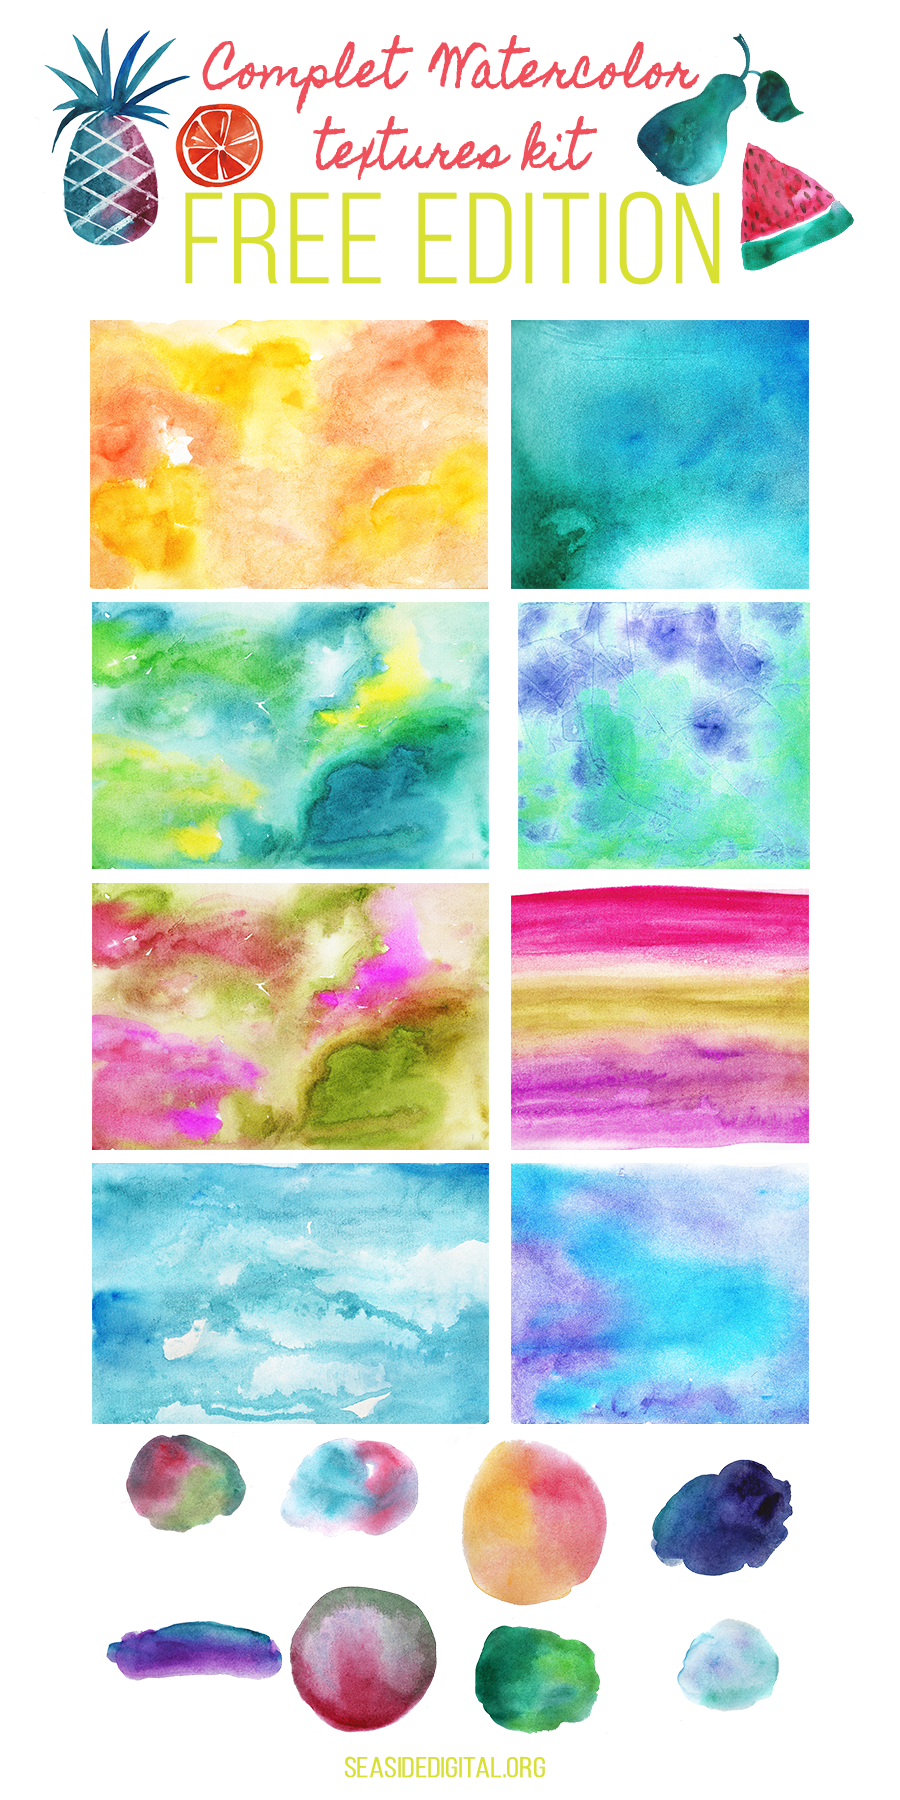 Free Watercolor Textures Kit